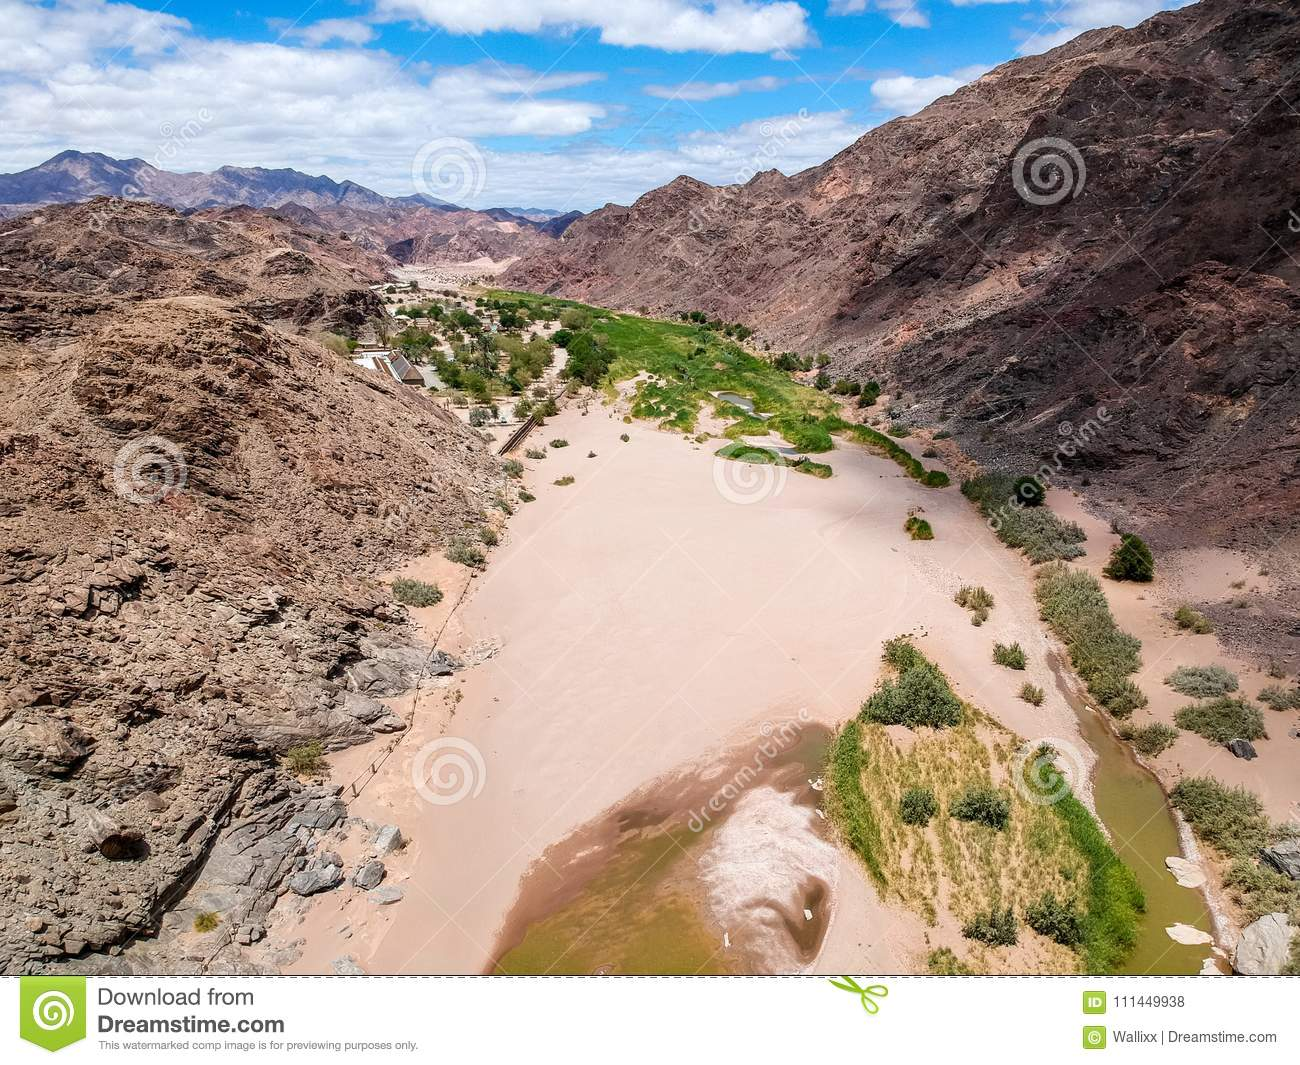 Stunning wide angle aerial drone view of the dry riverbed and mountains near Ai-Ais Hot Springs at the southern end of Fish River